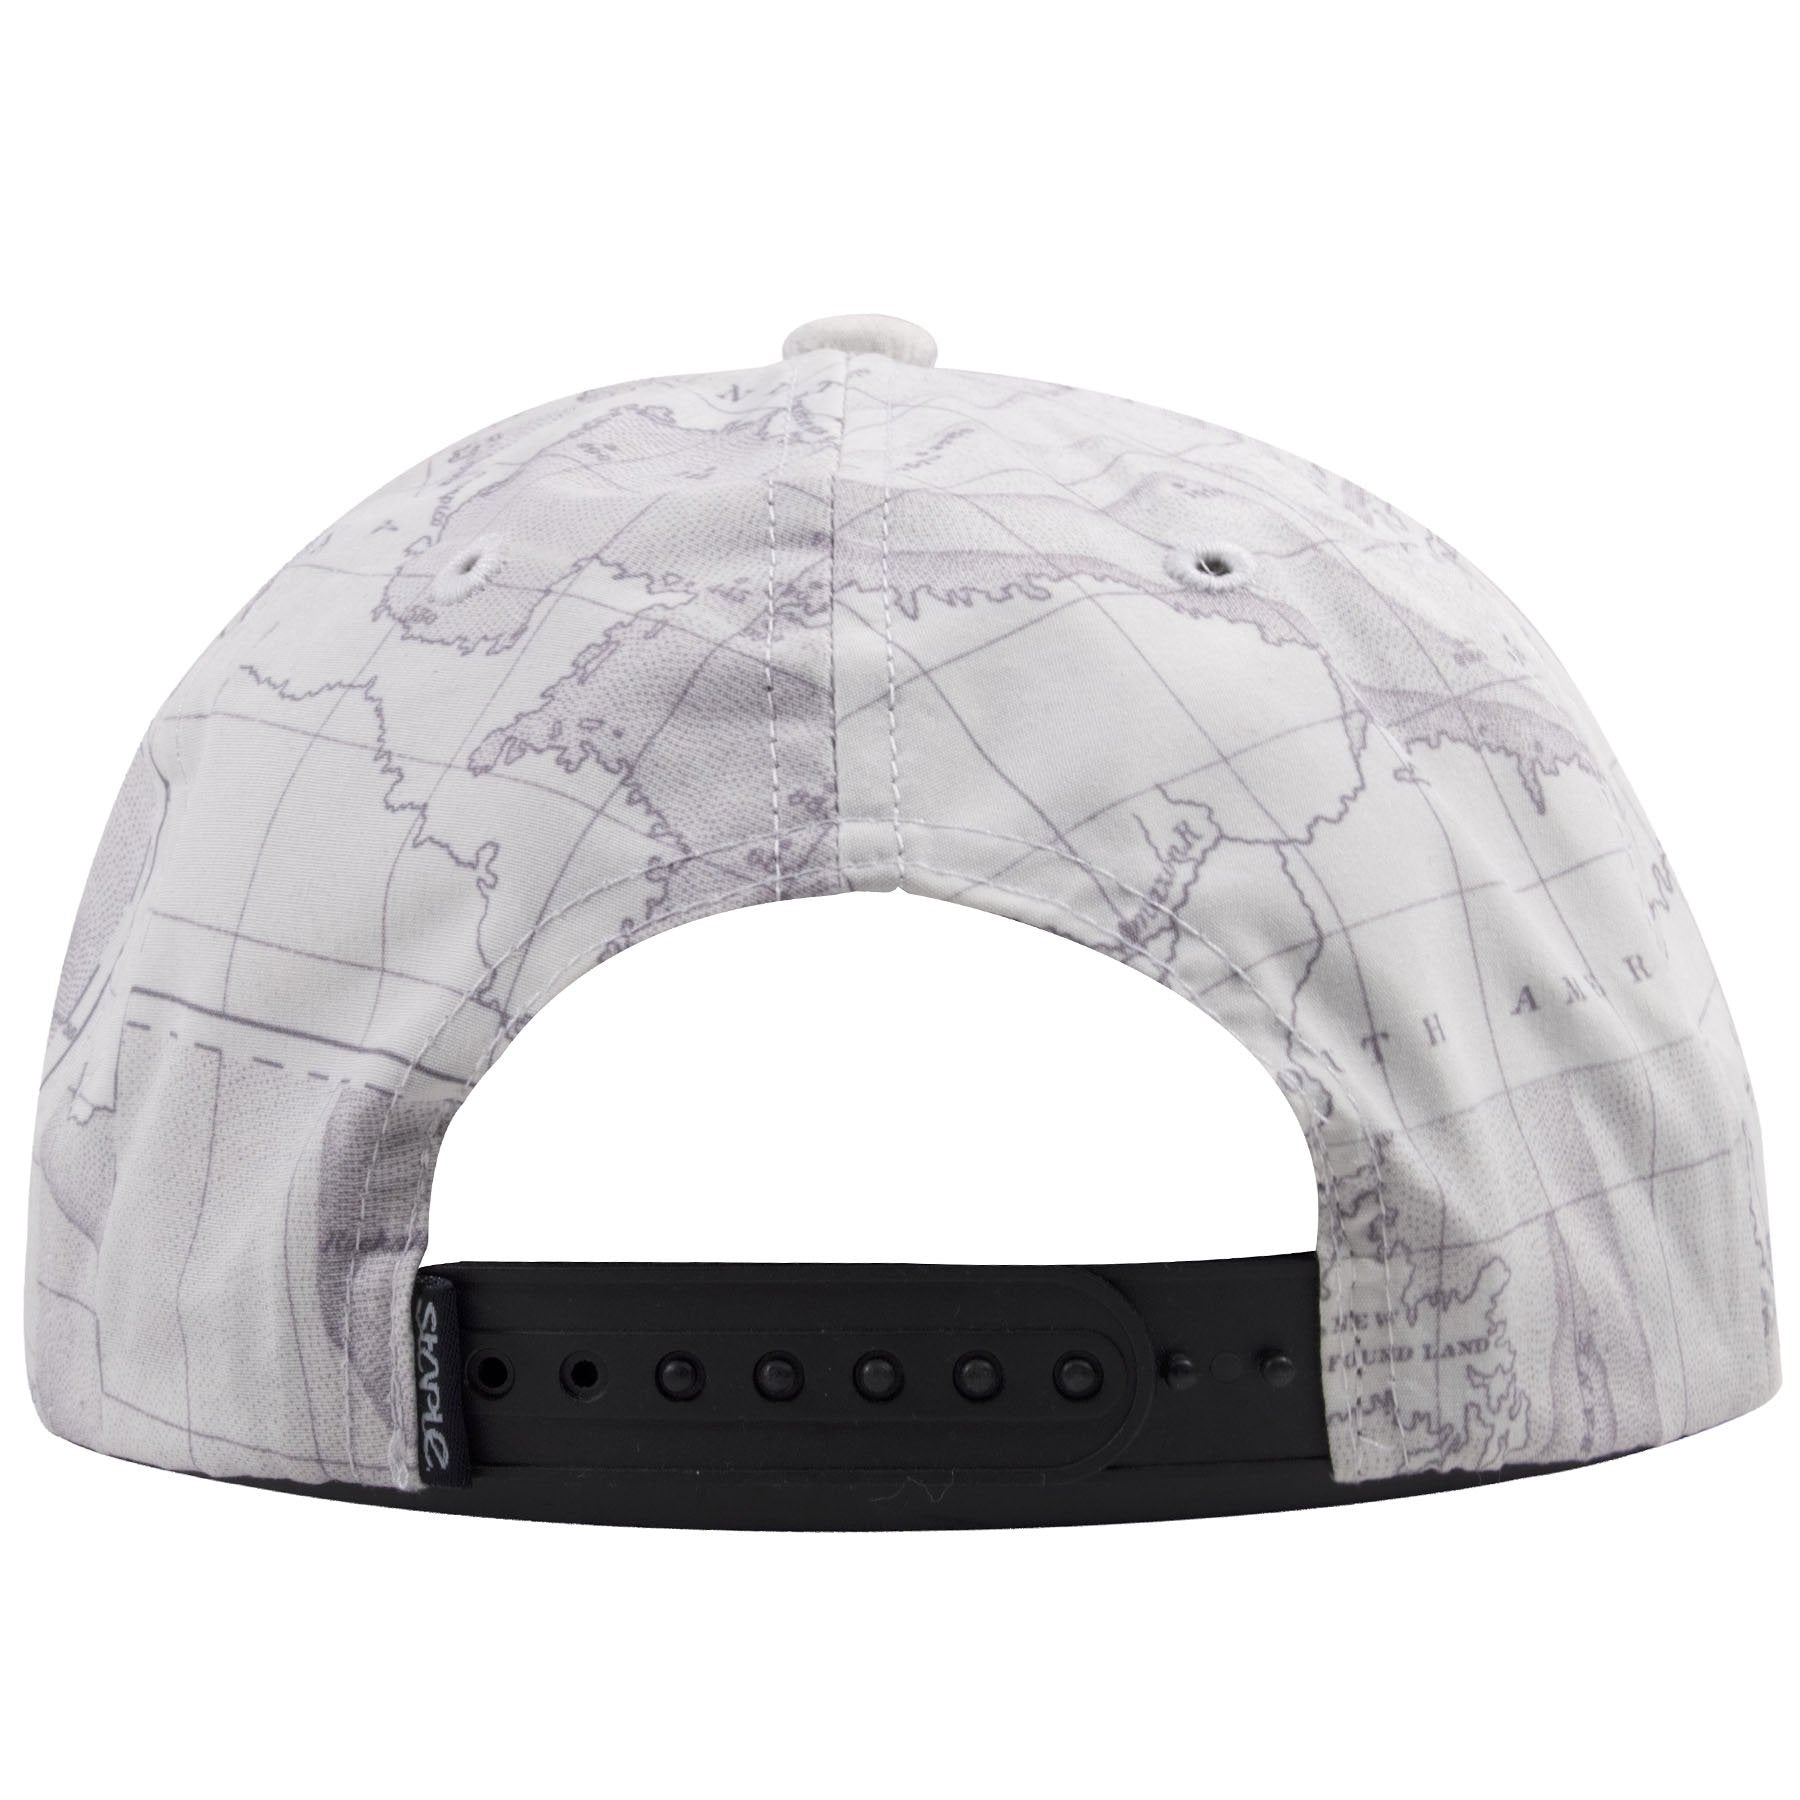 73976442c91 ... Staple Pigeon Hat shows a continuation of the world map. The back of  this streetwear fashion snapback hat shows a black adjustable snap.